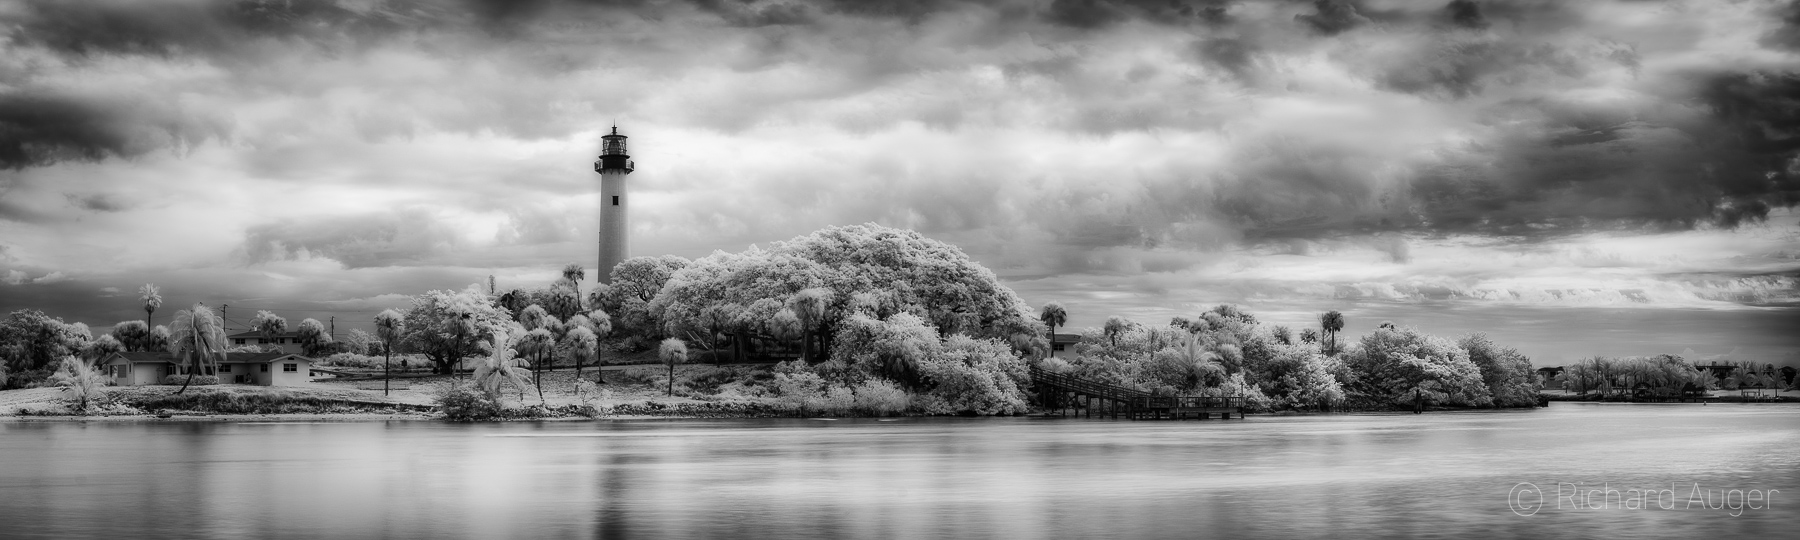 Jupiter Inlet Lighthouse, Florida, Palm Beach, coastal, sepia, lighthouse, storm, monochrome, landscape, photographer